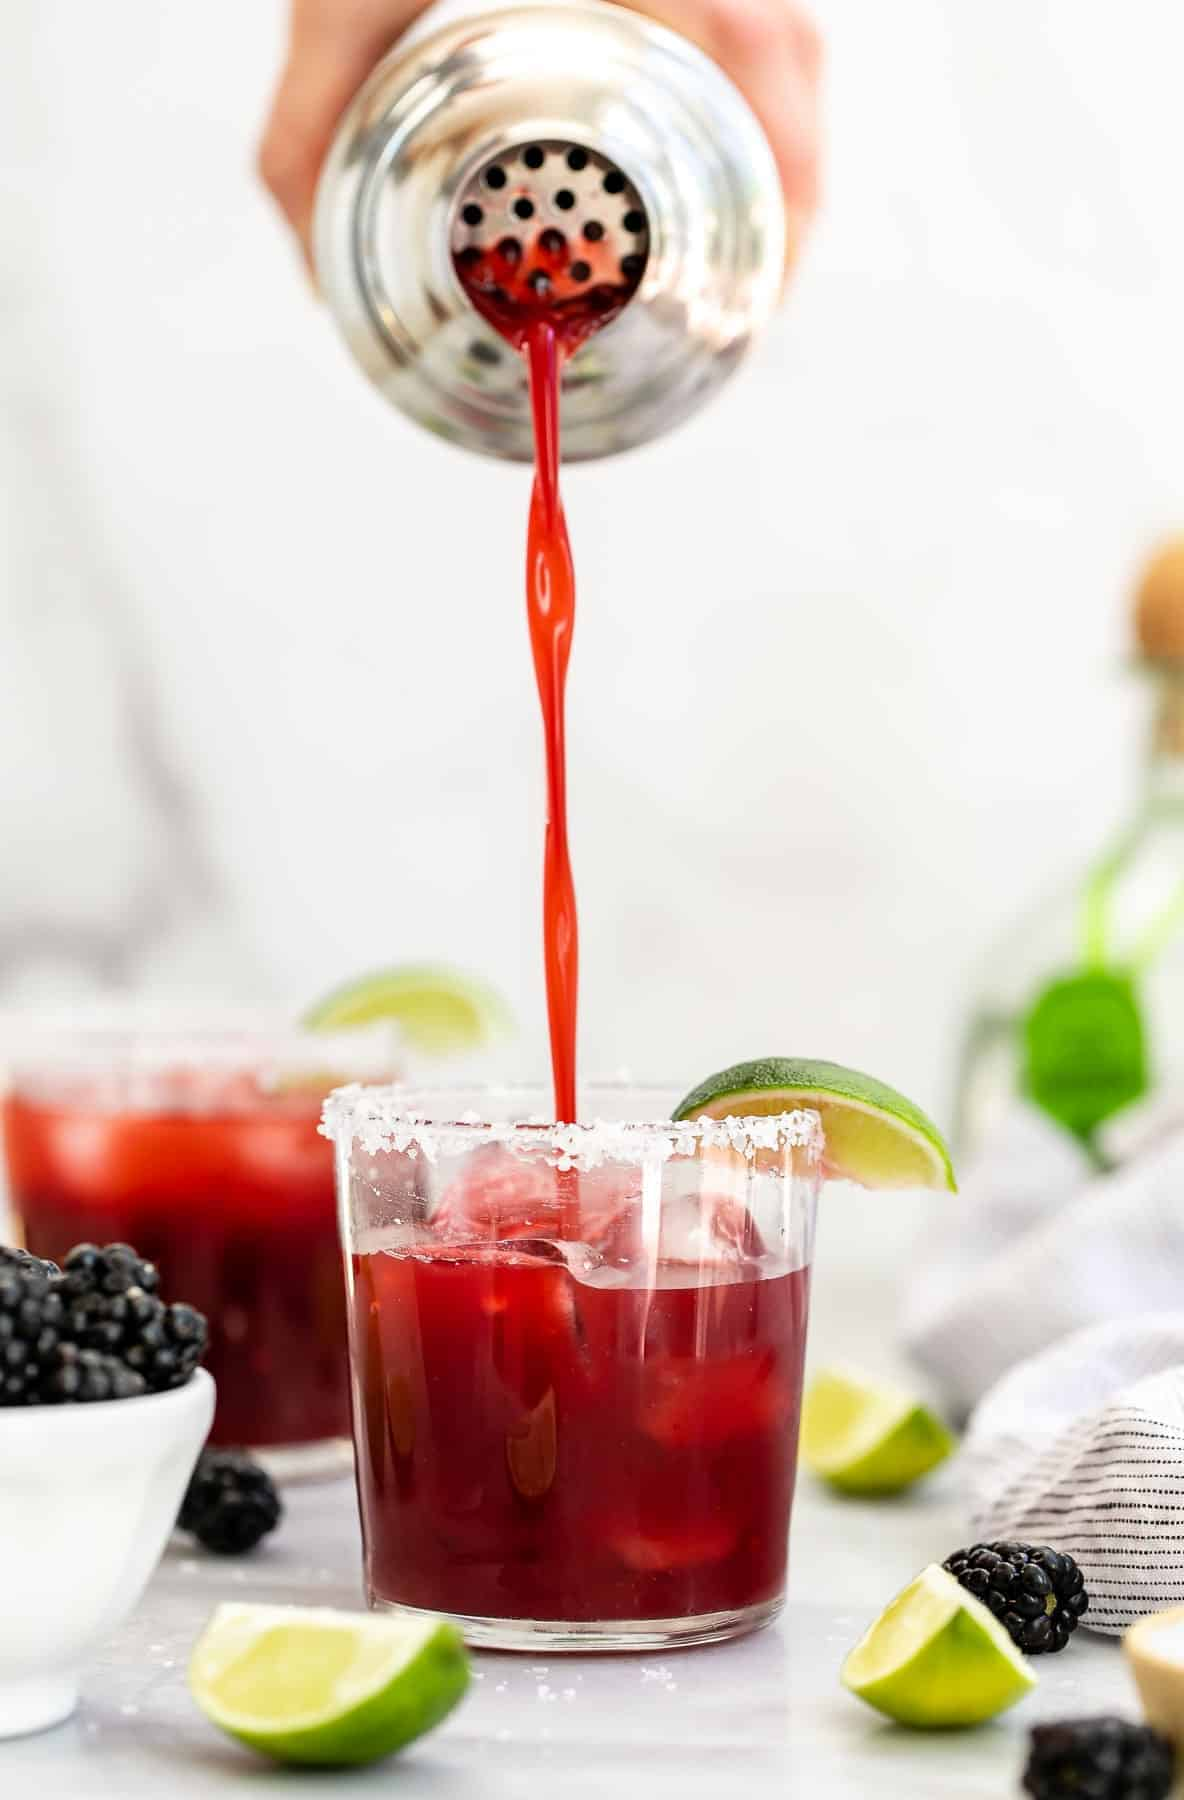 Pouring the blackberry margarita over ice in a glass.